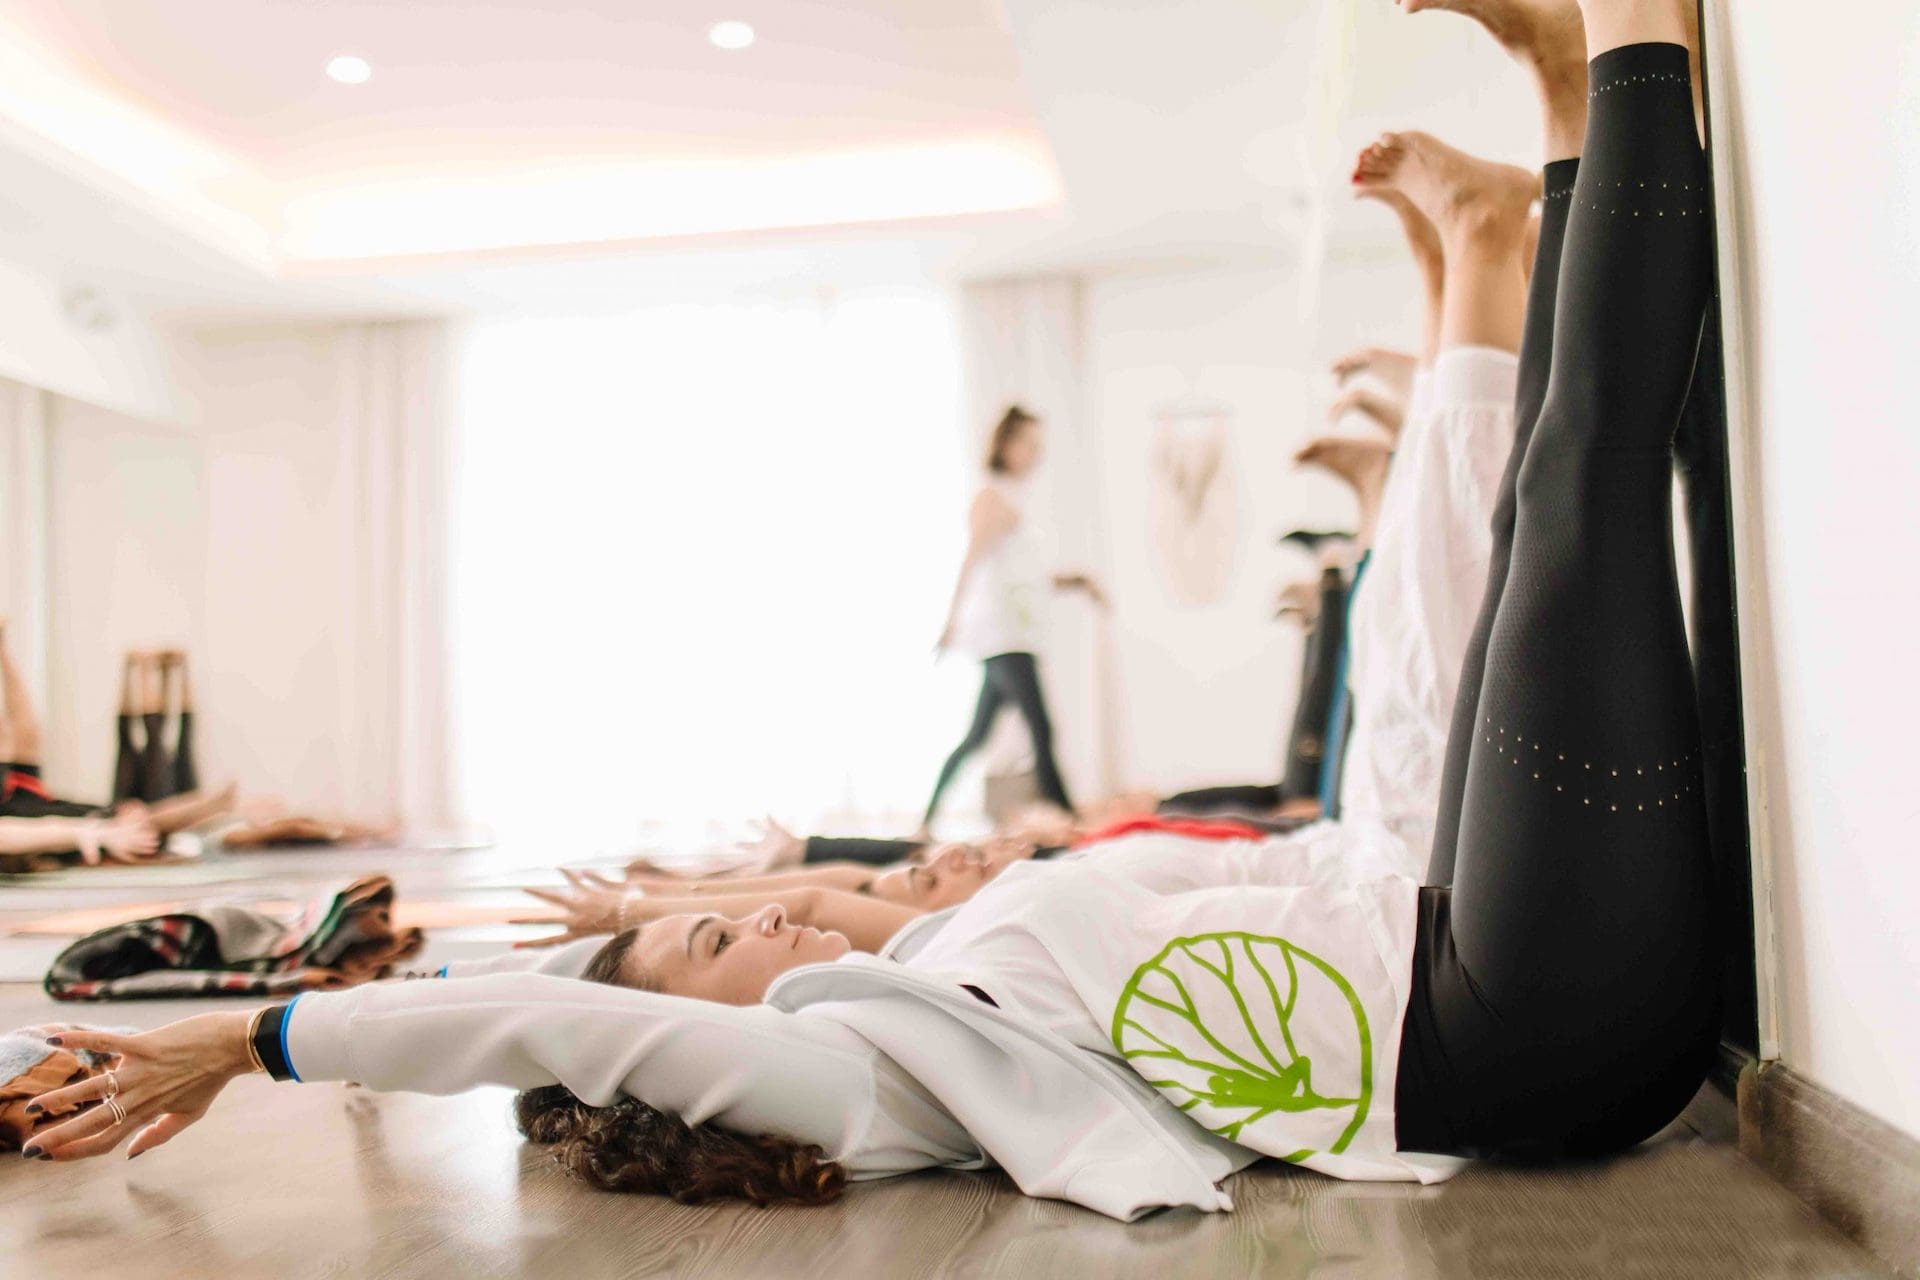 workshop and events at bodytree studio